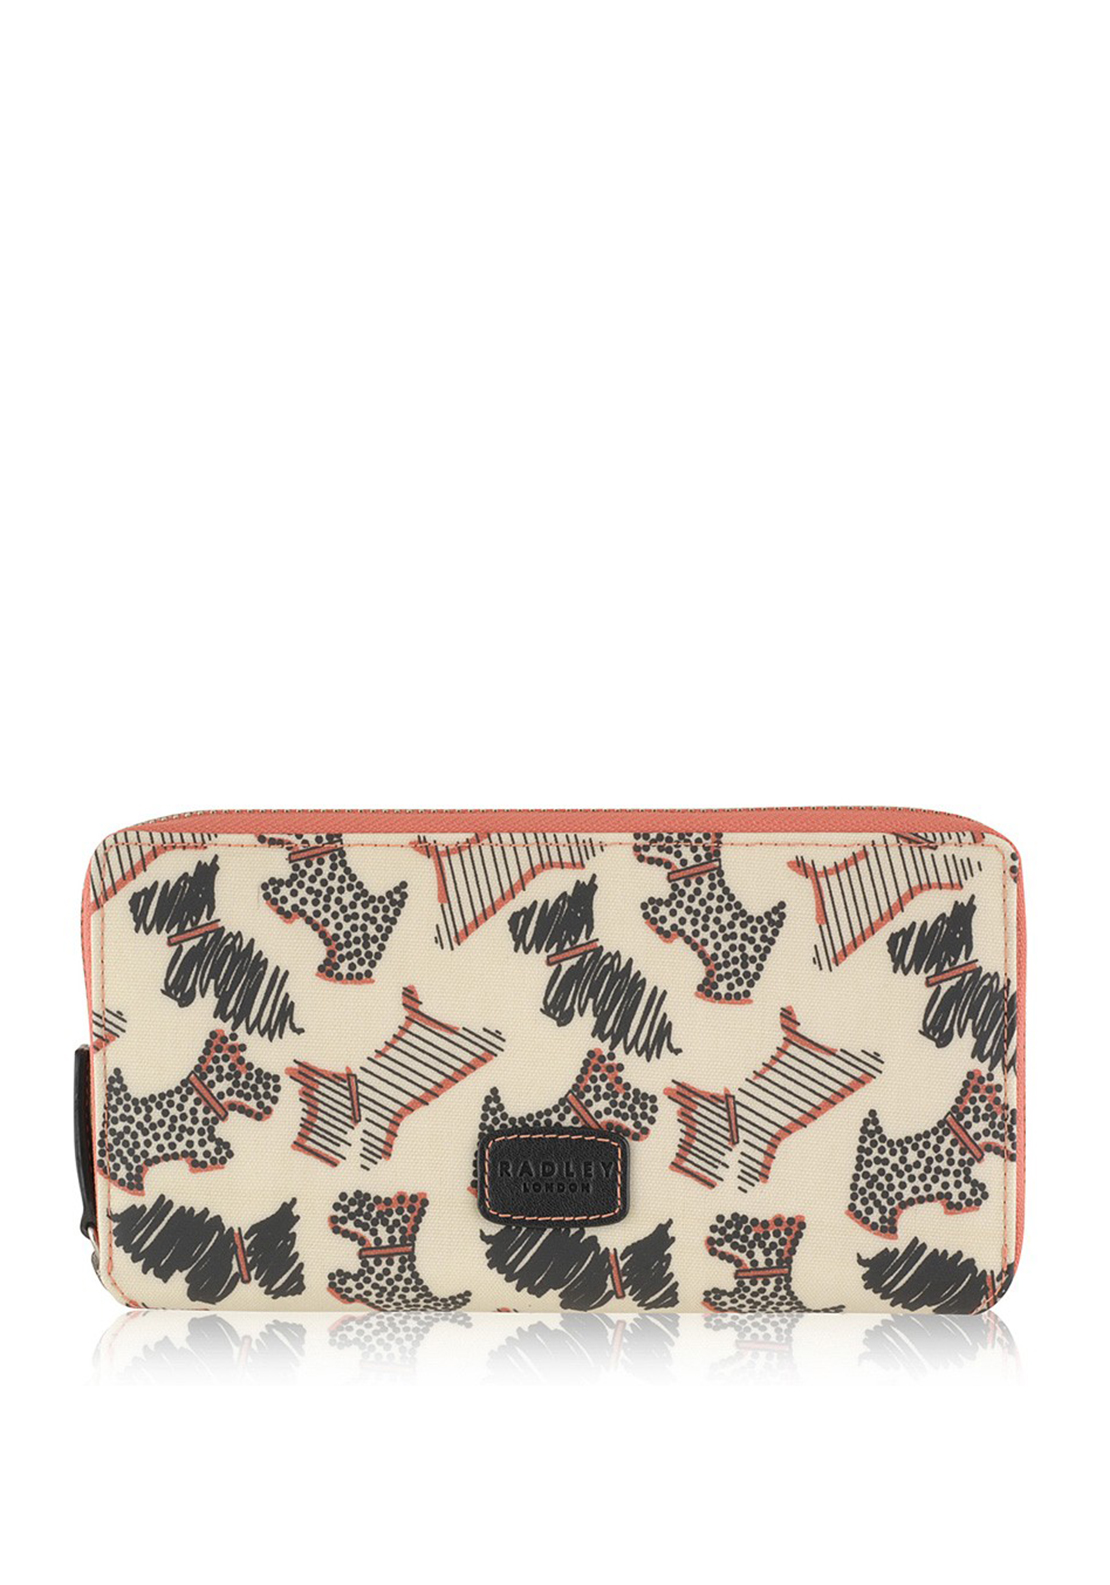 Radley Fleet Street Matinee Large Zip around Purse, Cream Multi